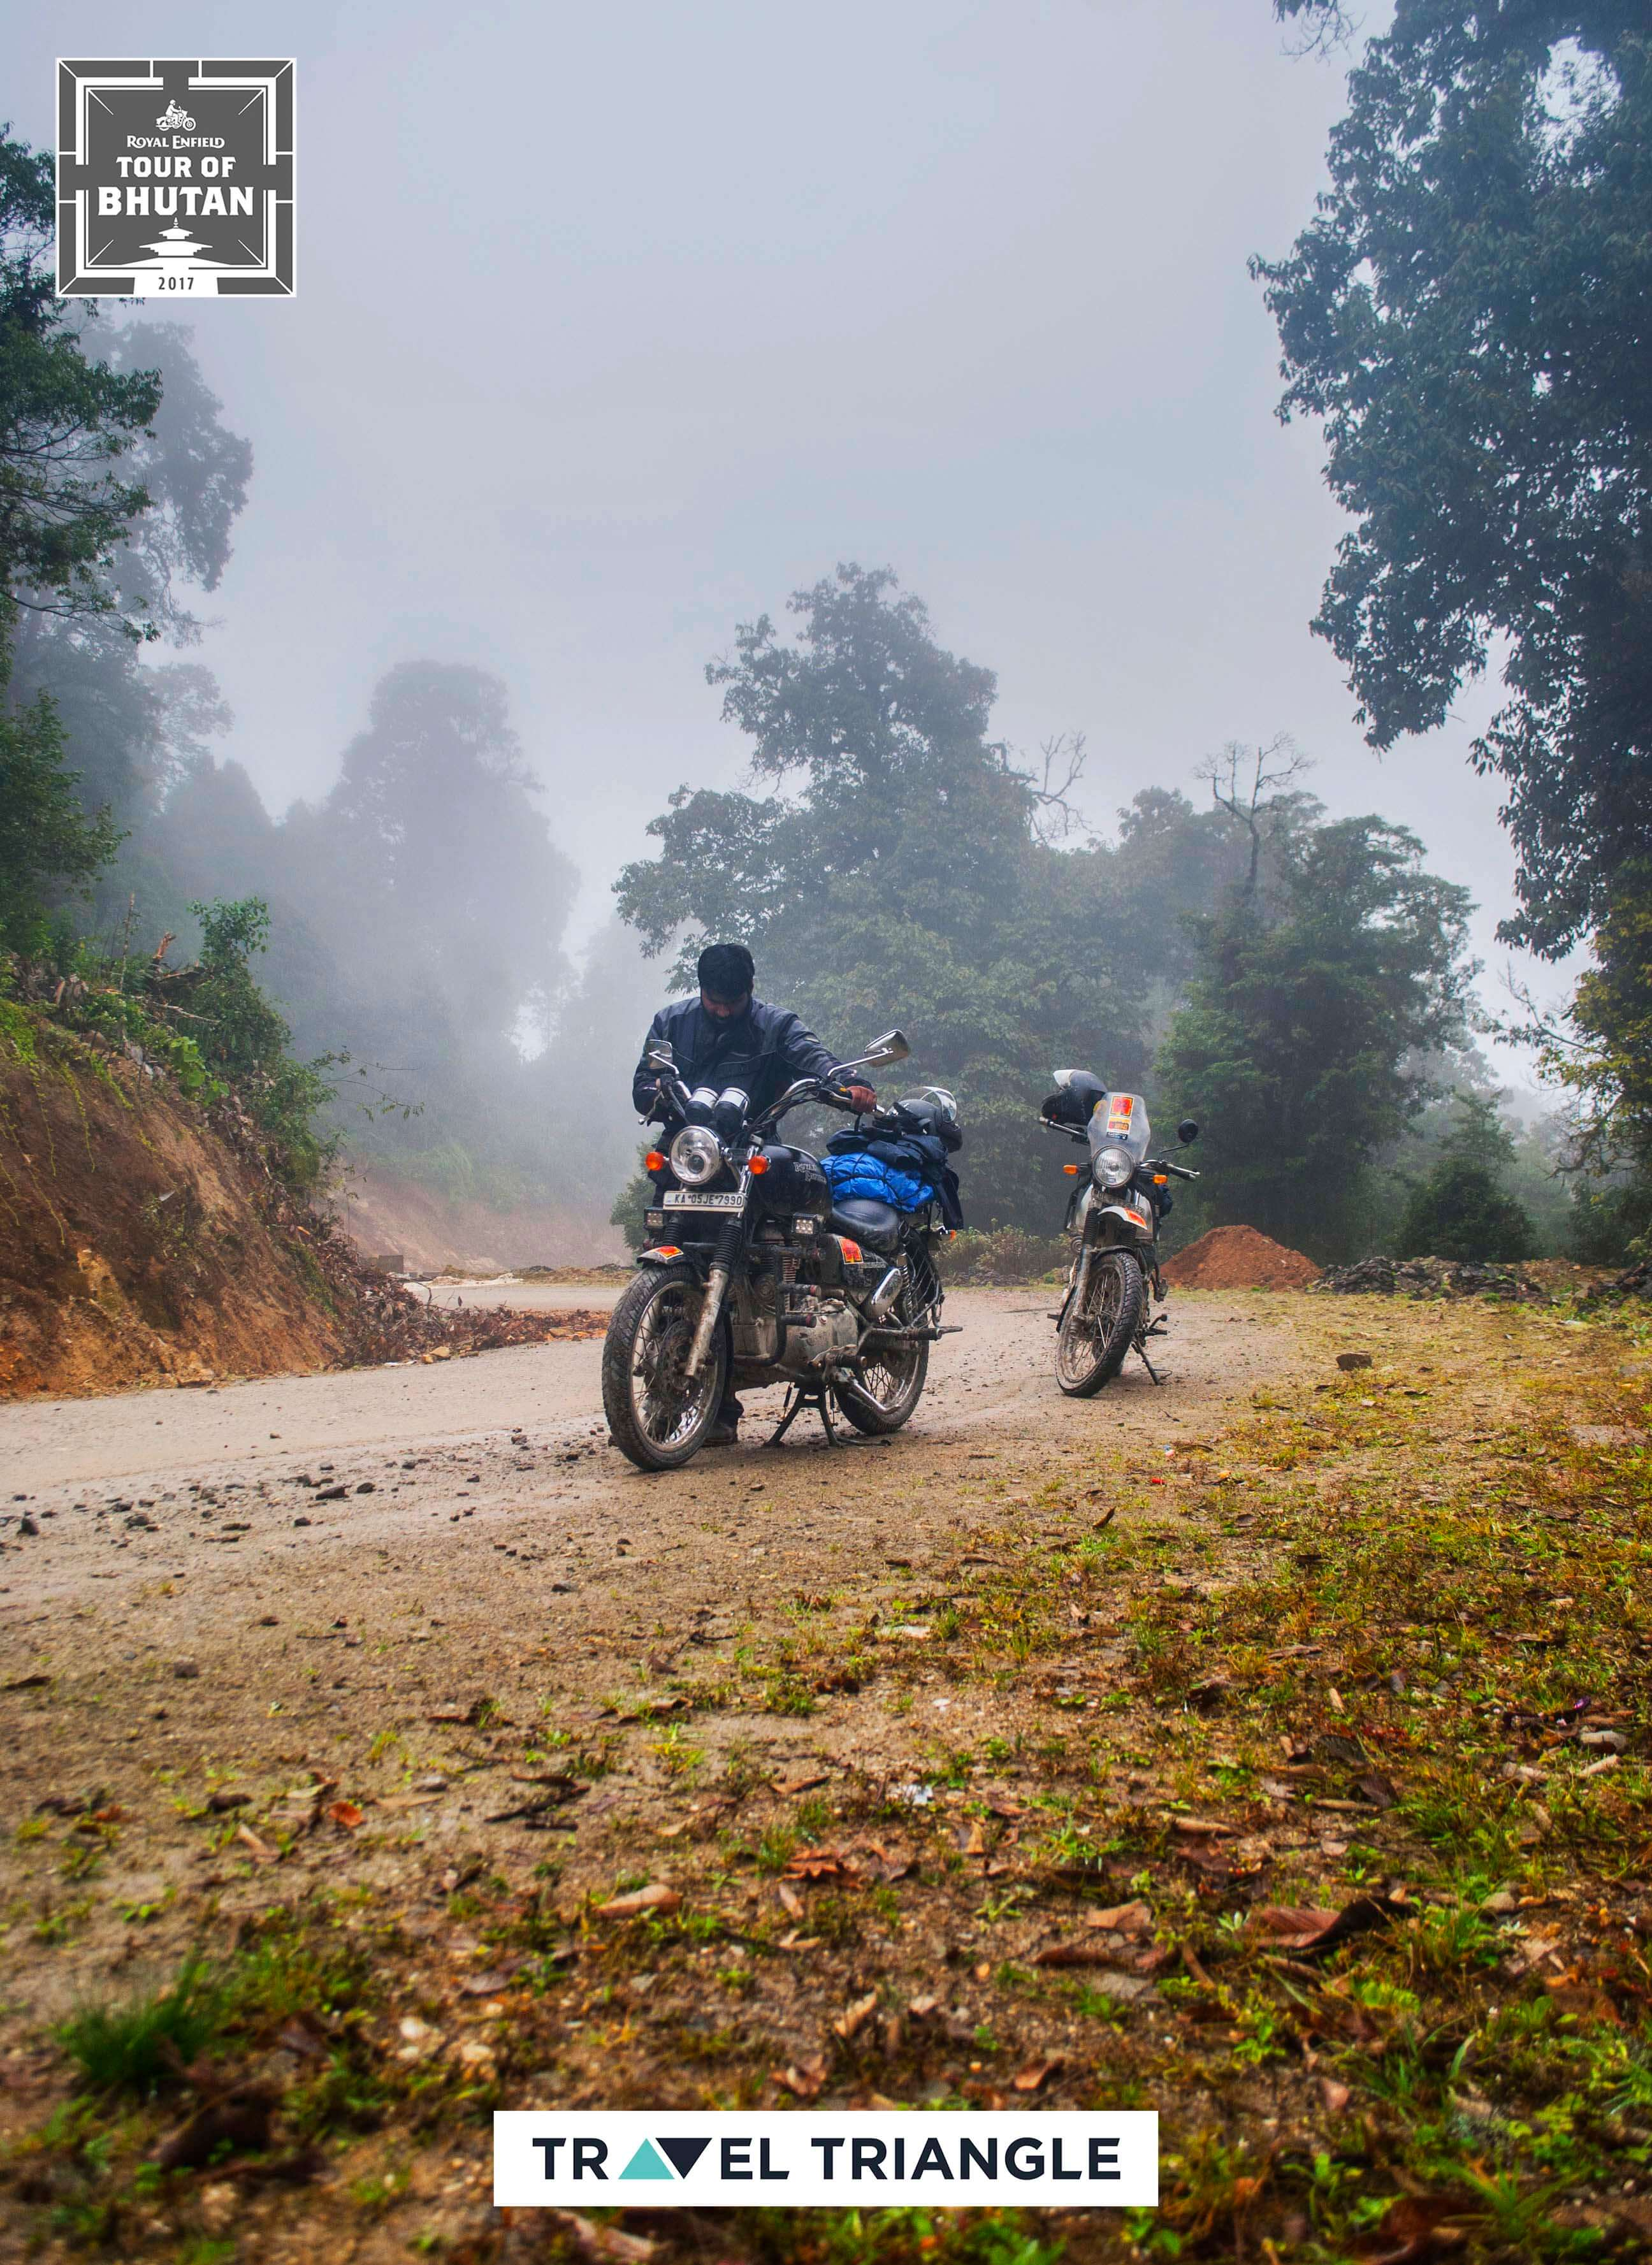 Mongar to Trashigang: treading through the tough muck